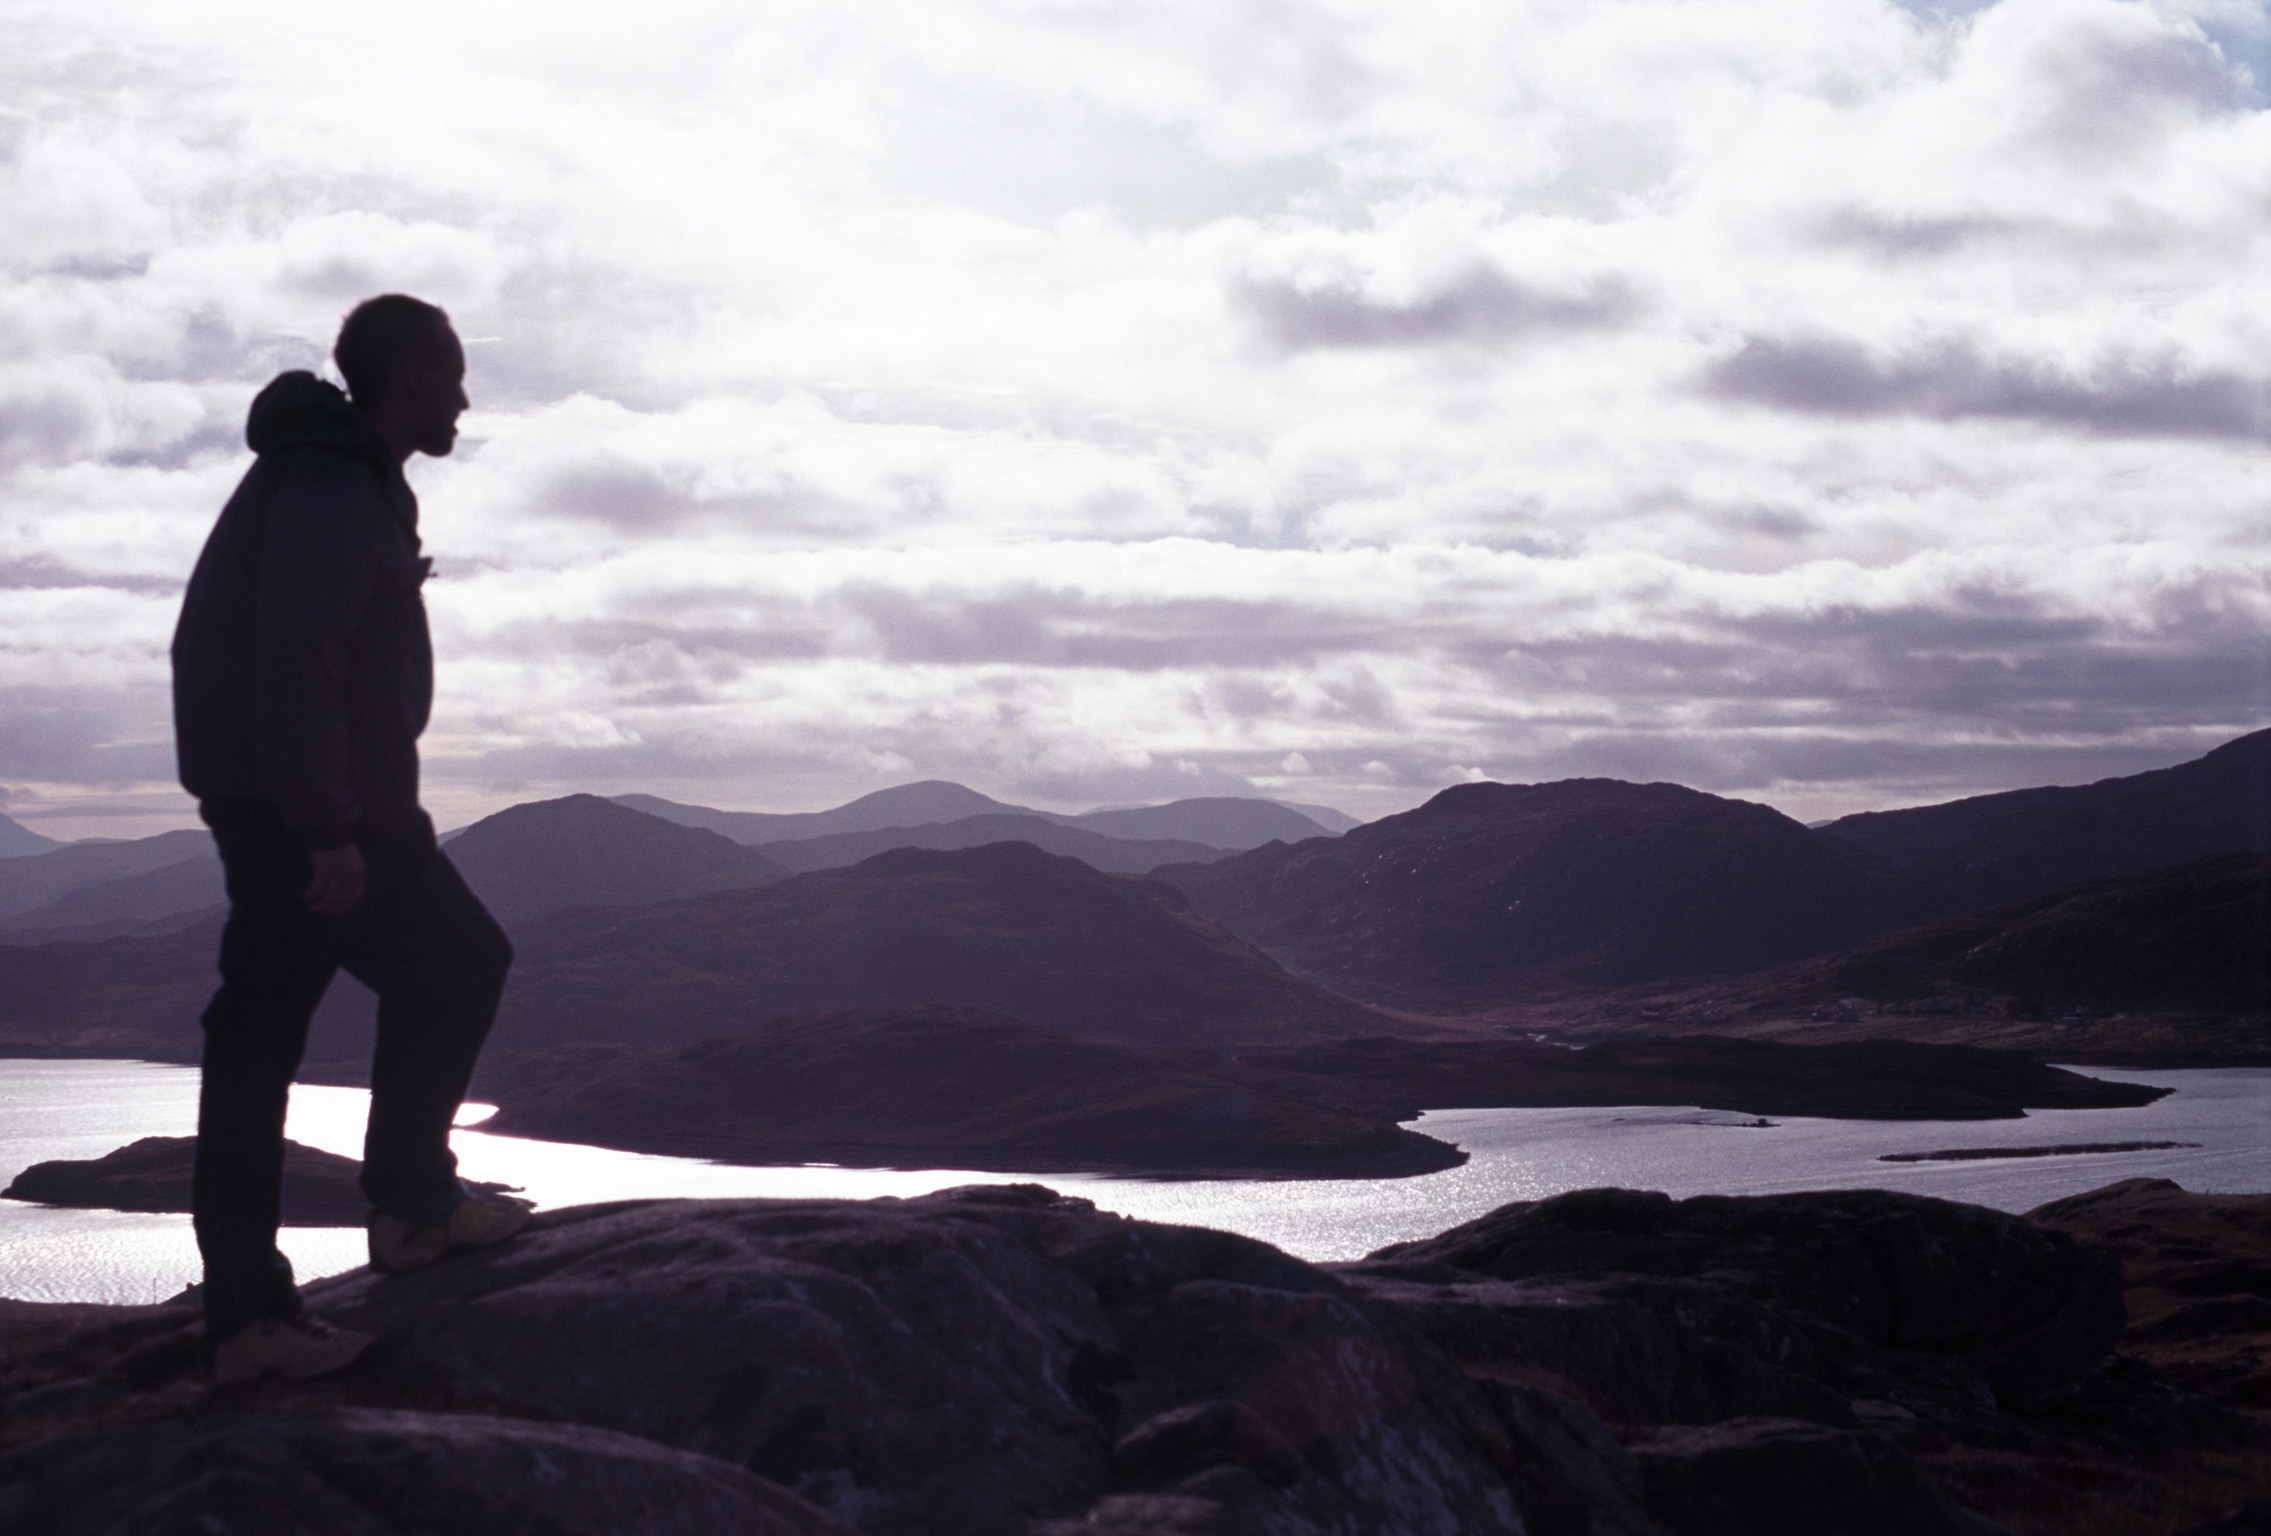 Climber silhouetted on a mountain peak overlooking a scenic landscape with lakes at dusk against a cloudy sky